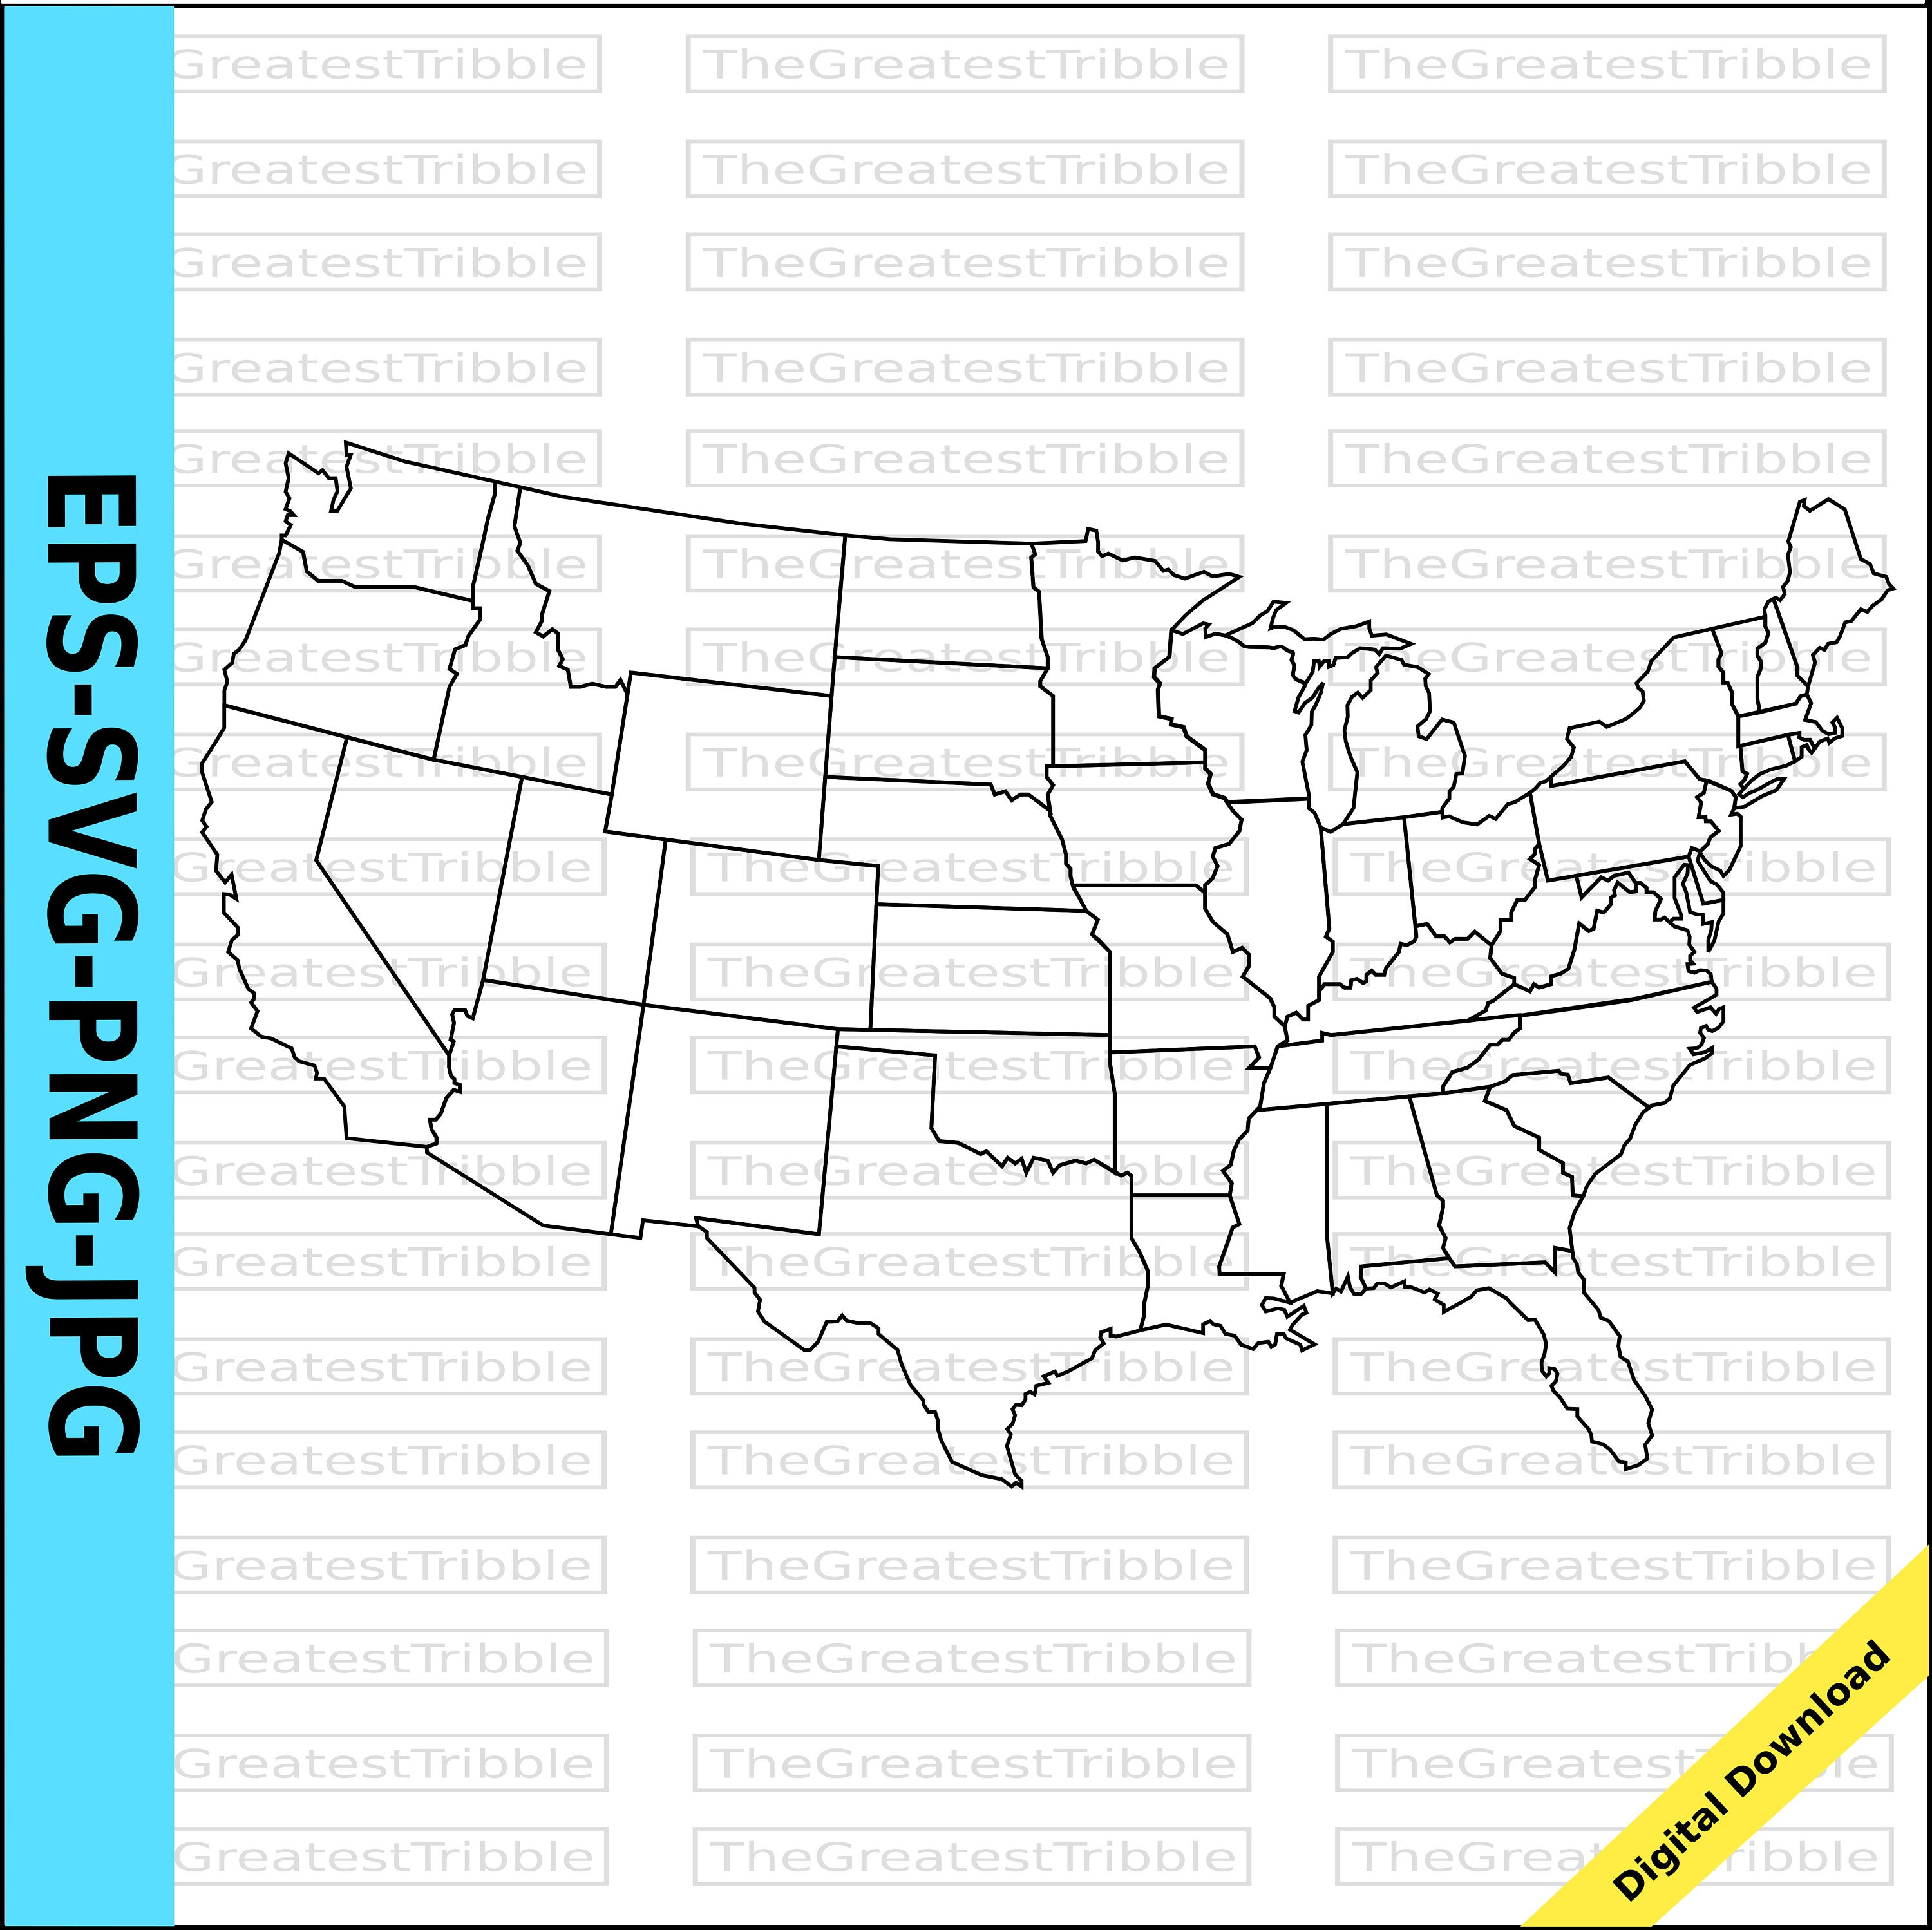 us map united states map state outlines transparent background eps svg png jpg from thegreatesttribble on etsy studio